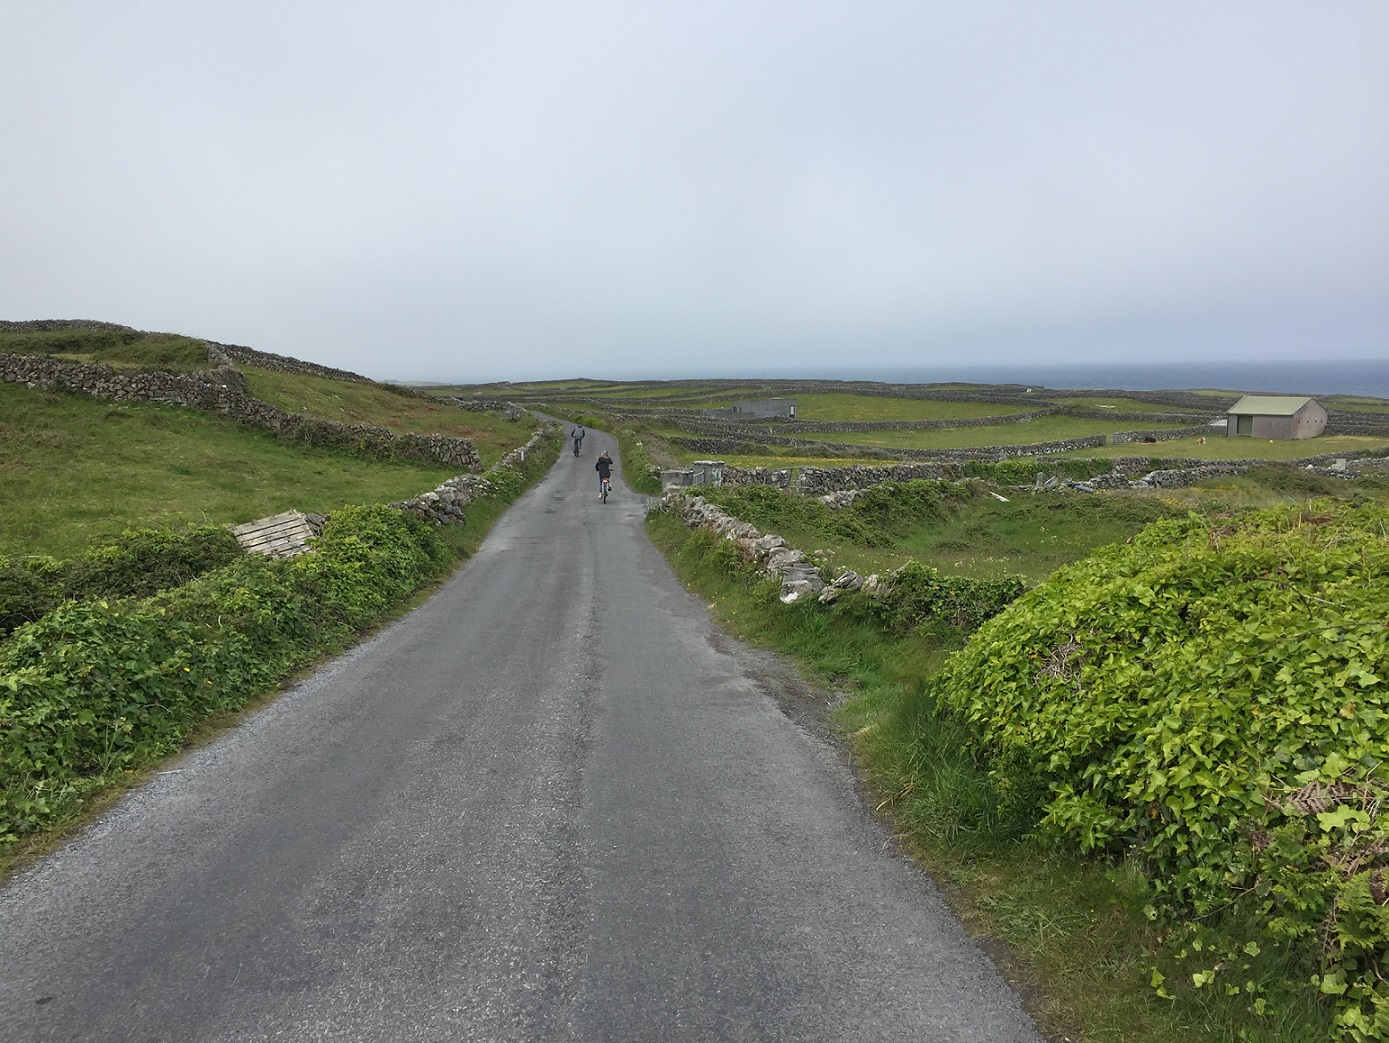 Photo 1 of Inis Mór (Photo credit: Anna Hoffman)